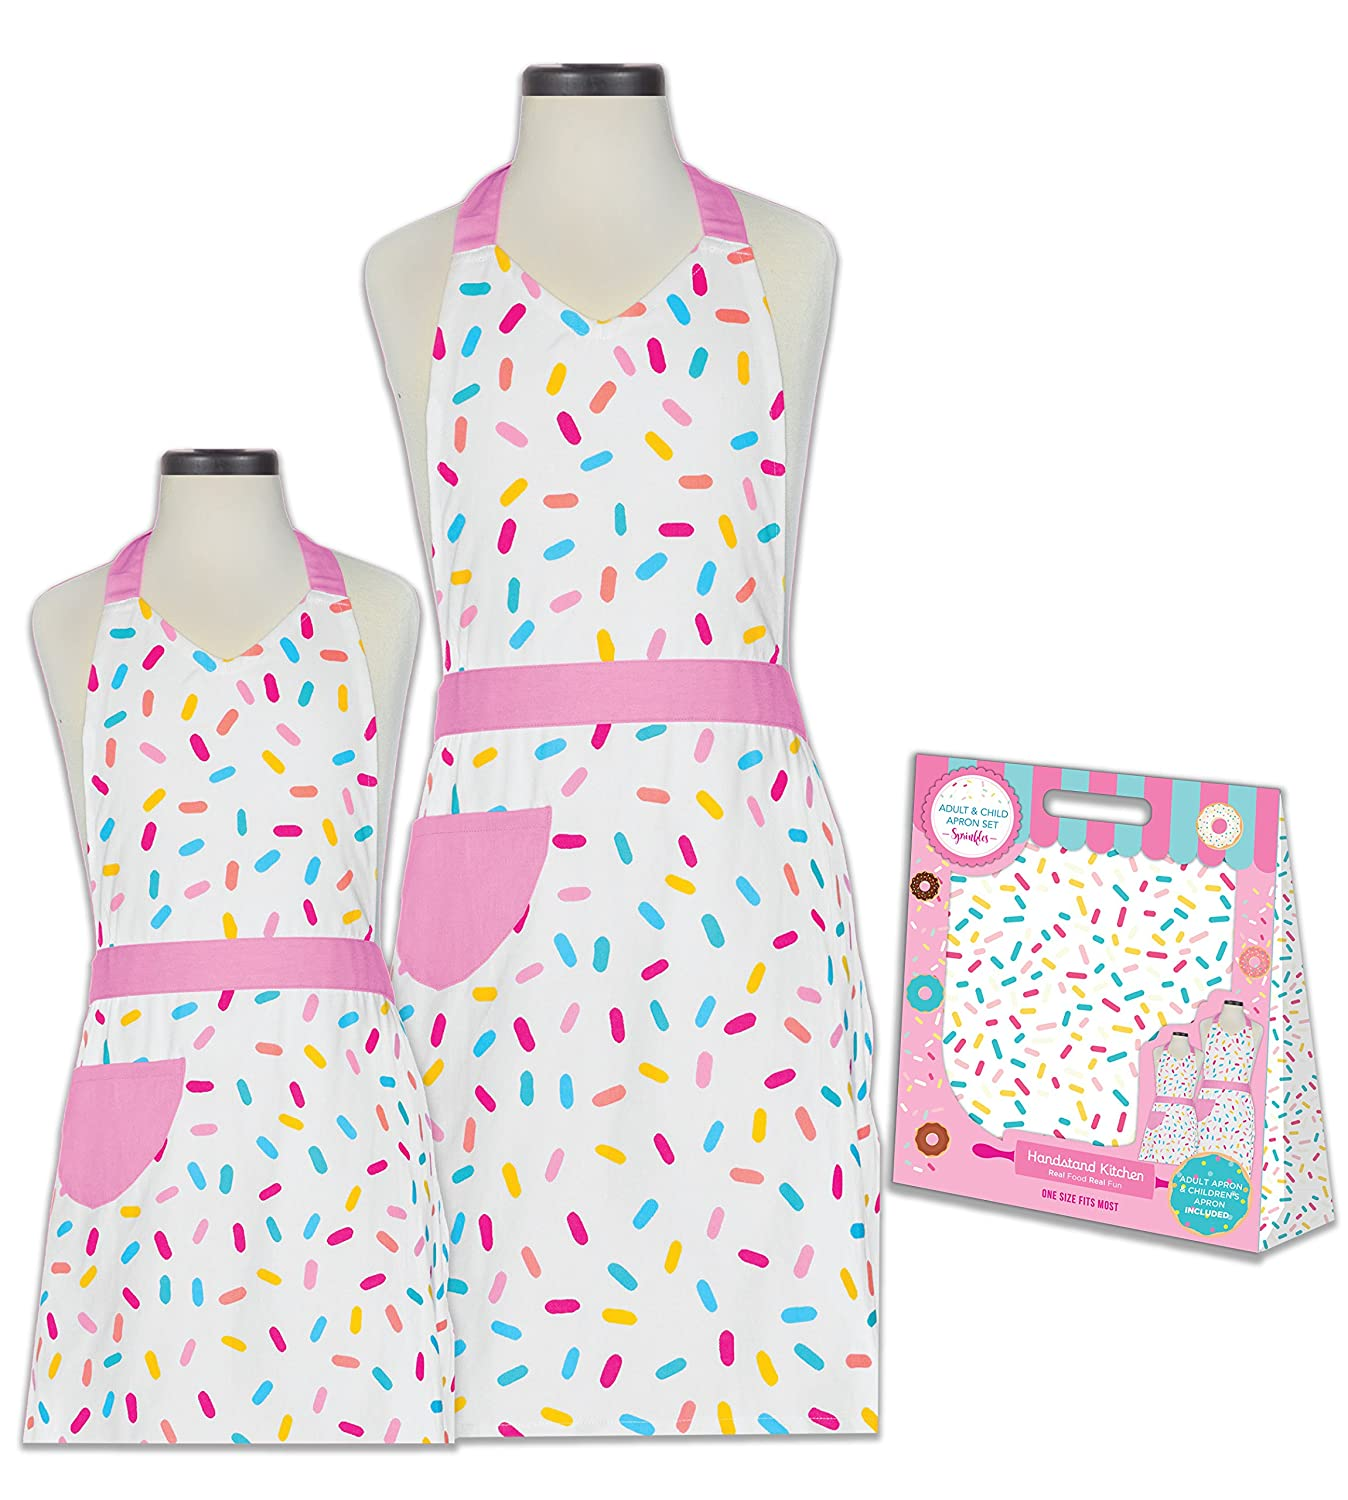 Handstand Kitchen Mother and Daughter Sprinkles 100% Cotton Apron Gift Set Handstand Kids LLC SPKL-MD